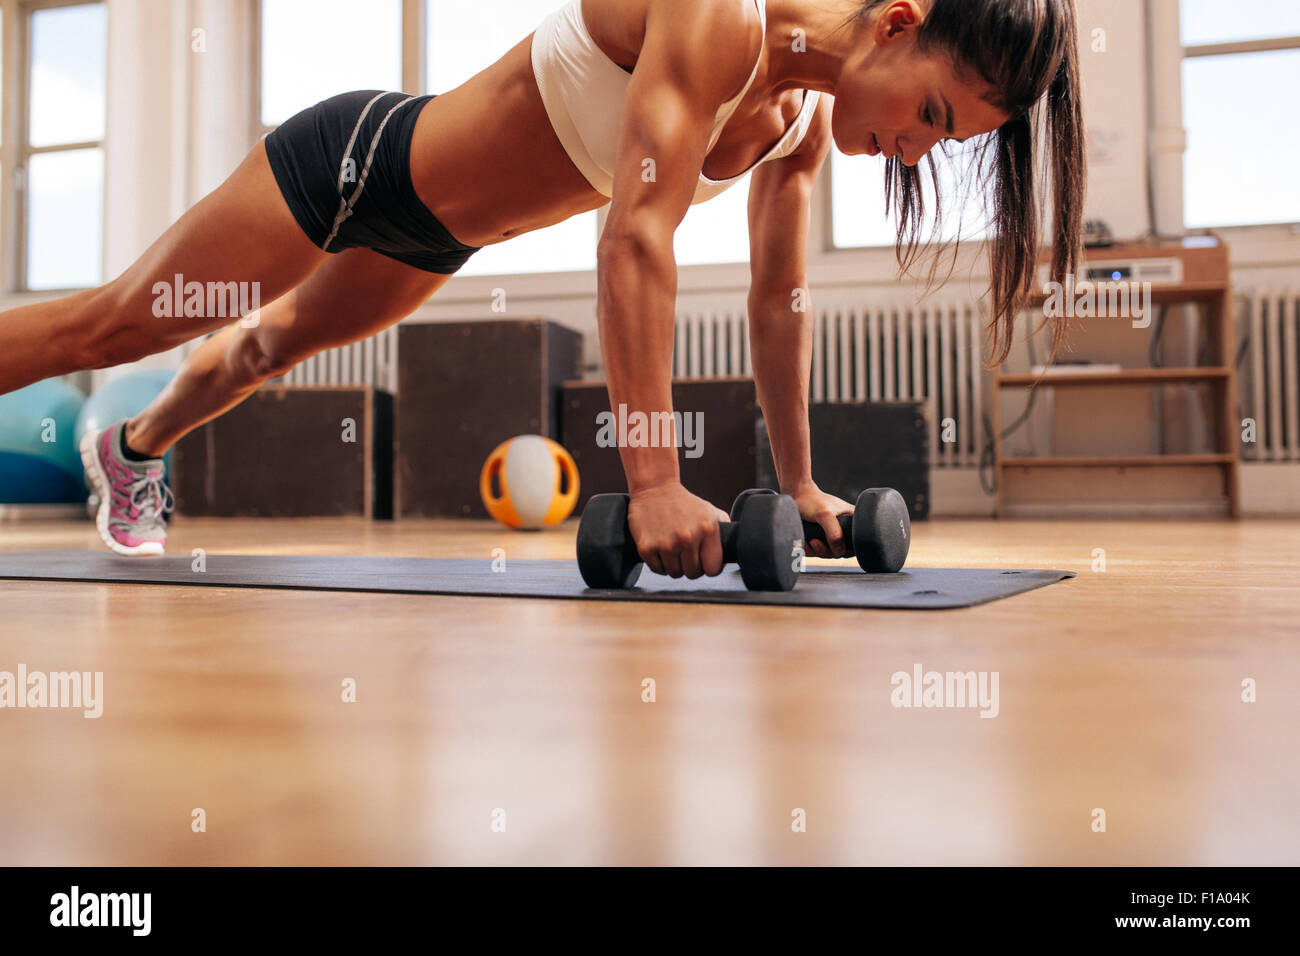 Strong young woman doing push ups exercise with dumbbells on yoga mat. Fitness model doing intense training in the - Stock Image